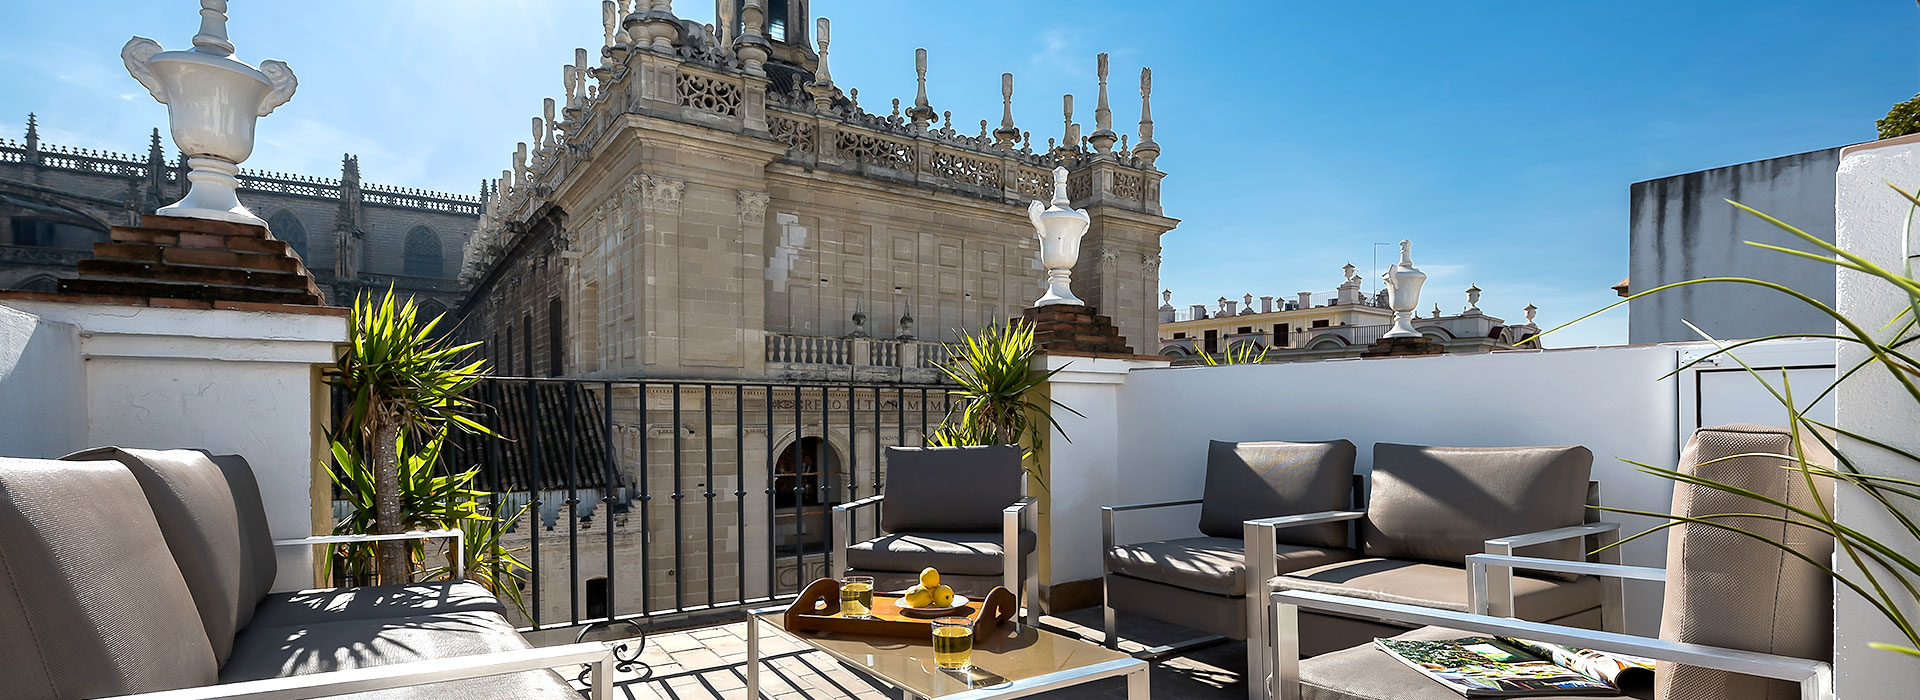 Apartment Genteel Catedral I In Seville Genteel Home Com